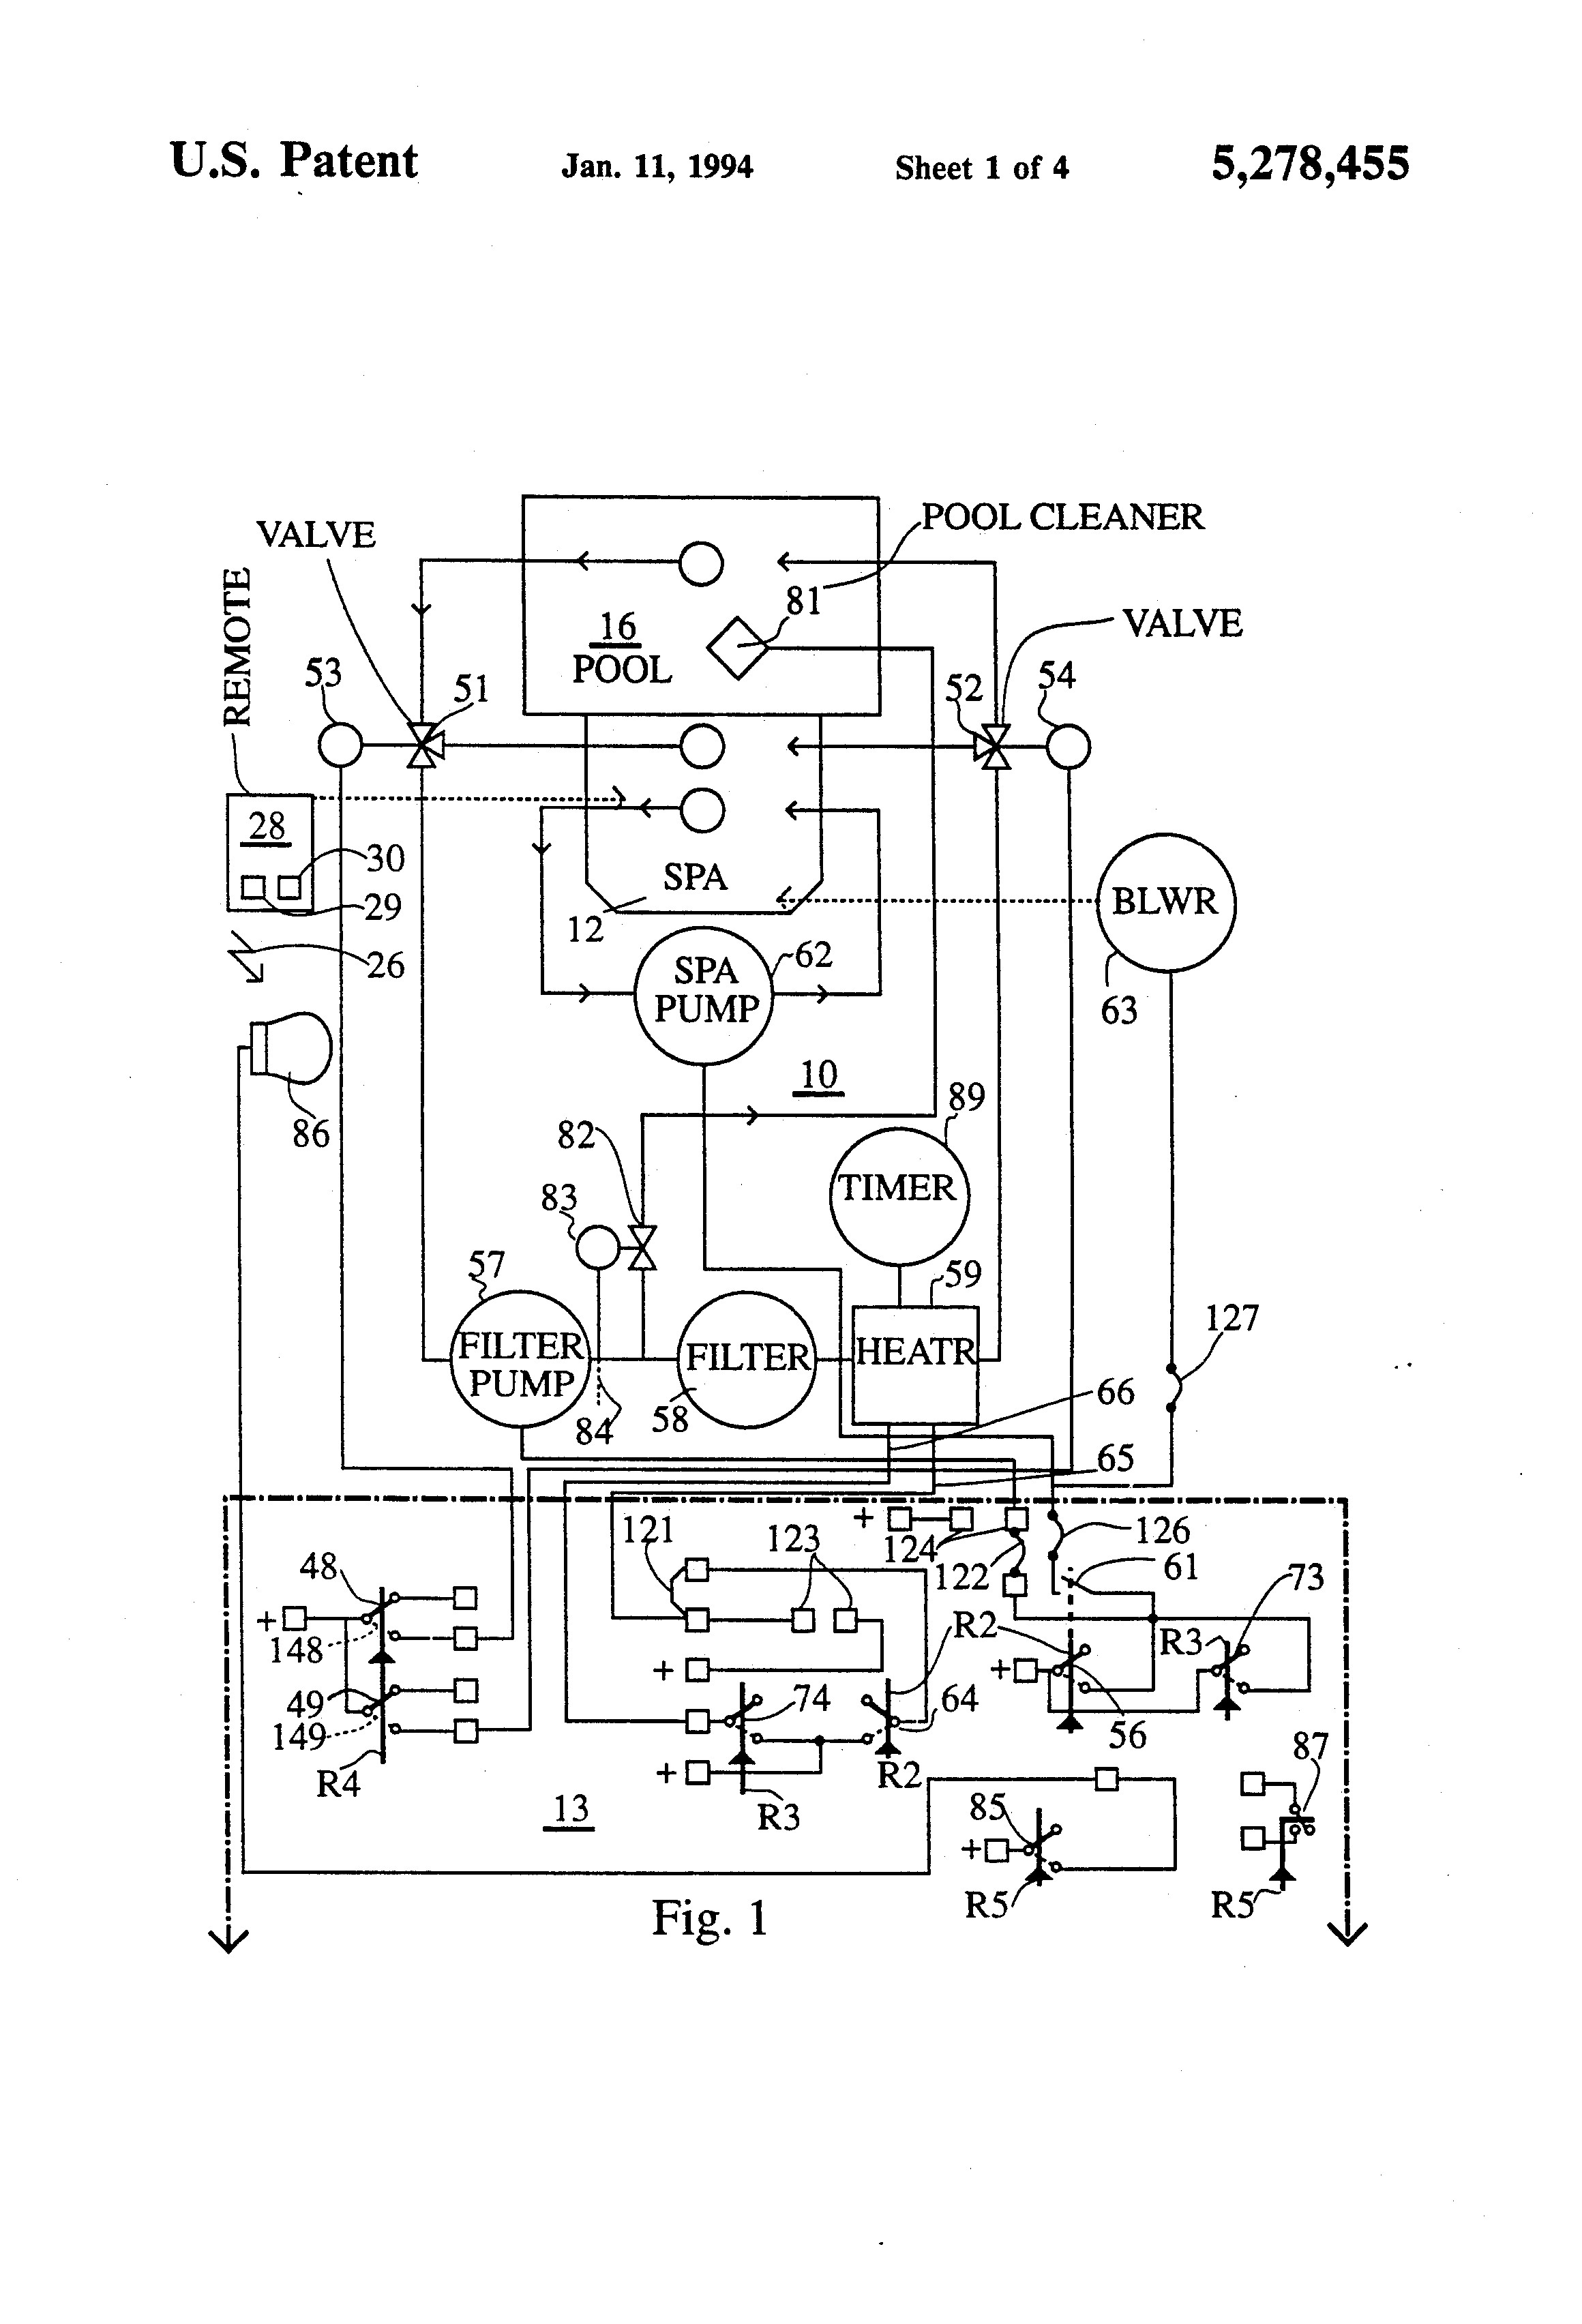 Leisure Bay Wiring Diagram on leisure bay control panel, leisure bay repair manual, leisure bay parts,